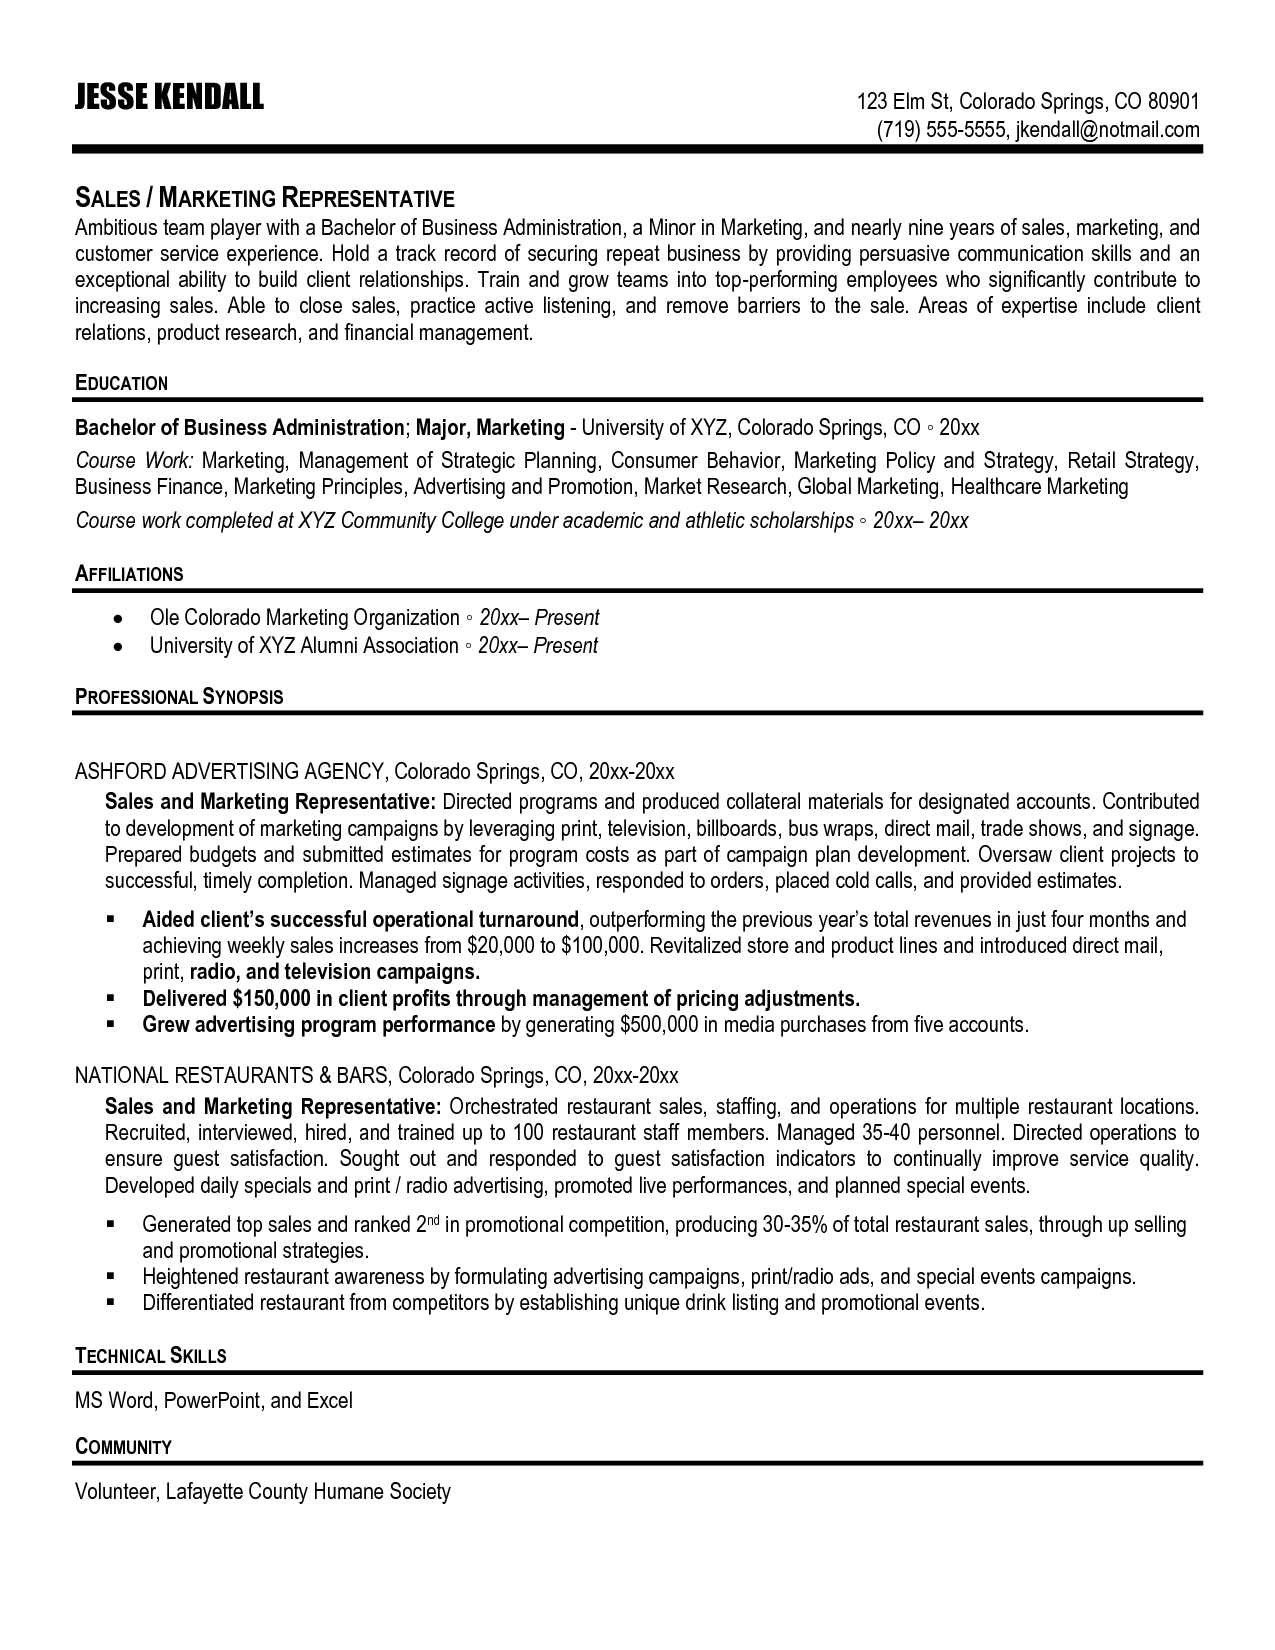 Telecom Sales Resume Manager Sample Apparel Field Engineer Cover